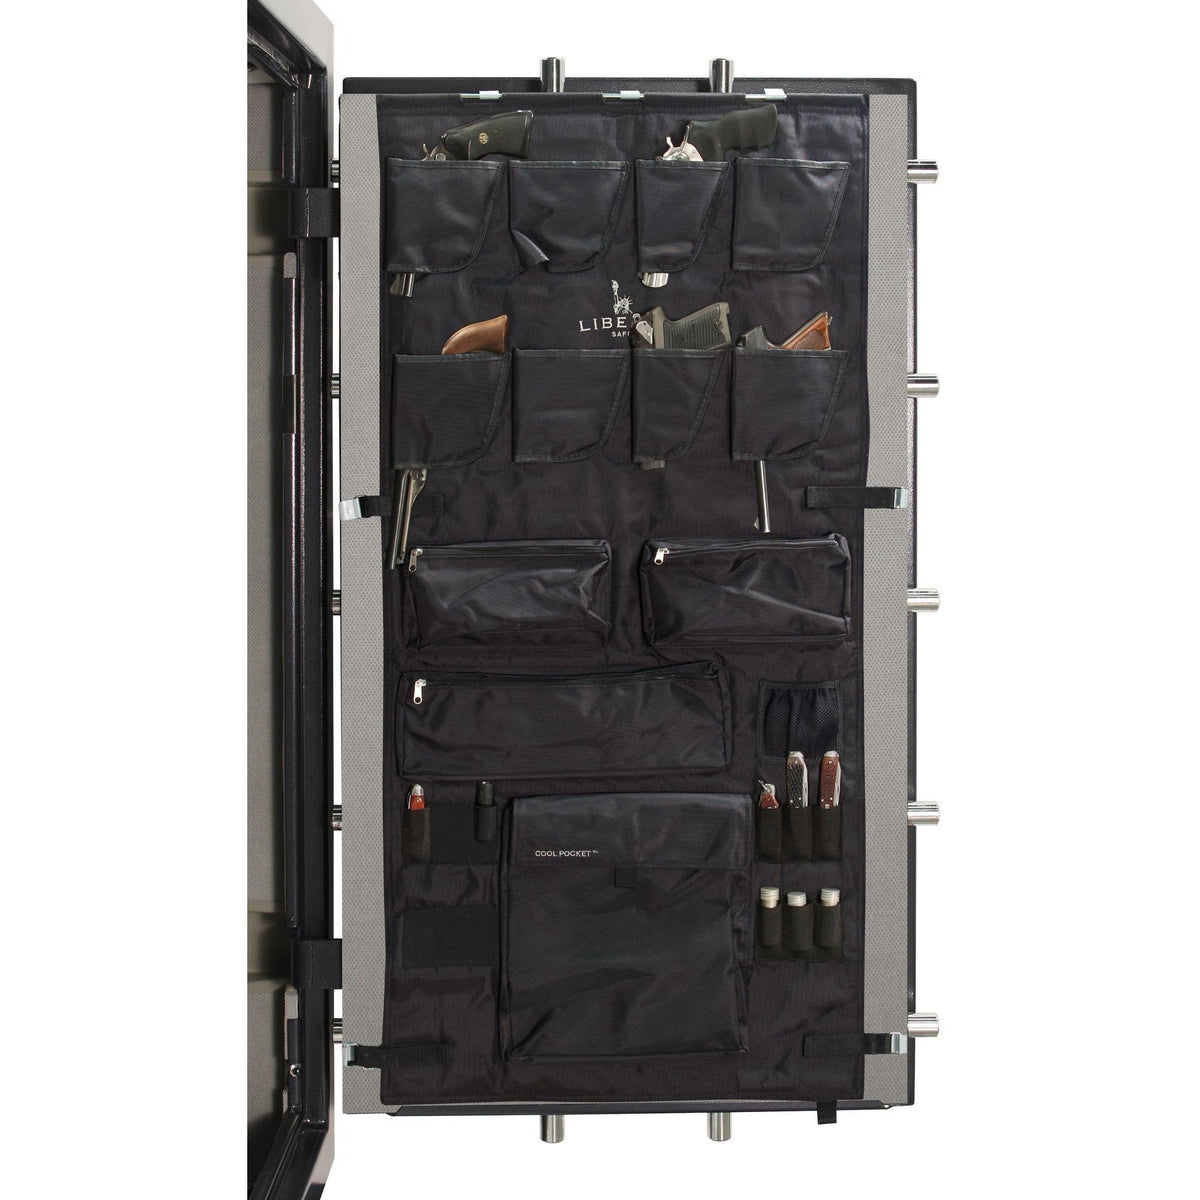 Accessory - Storage - Door Panel - 50 size safes